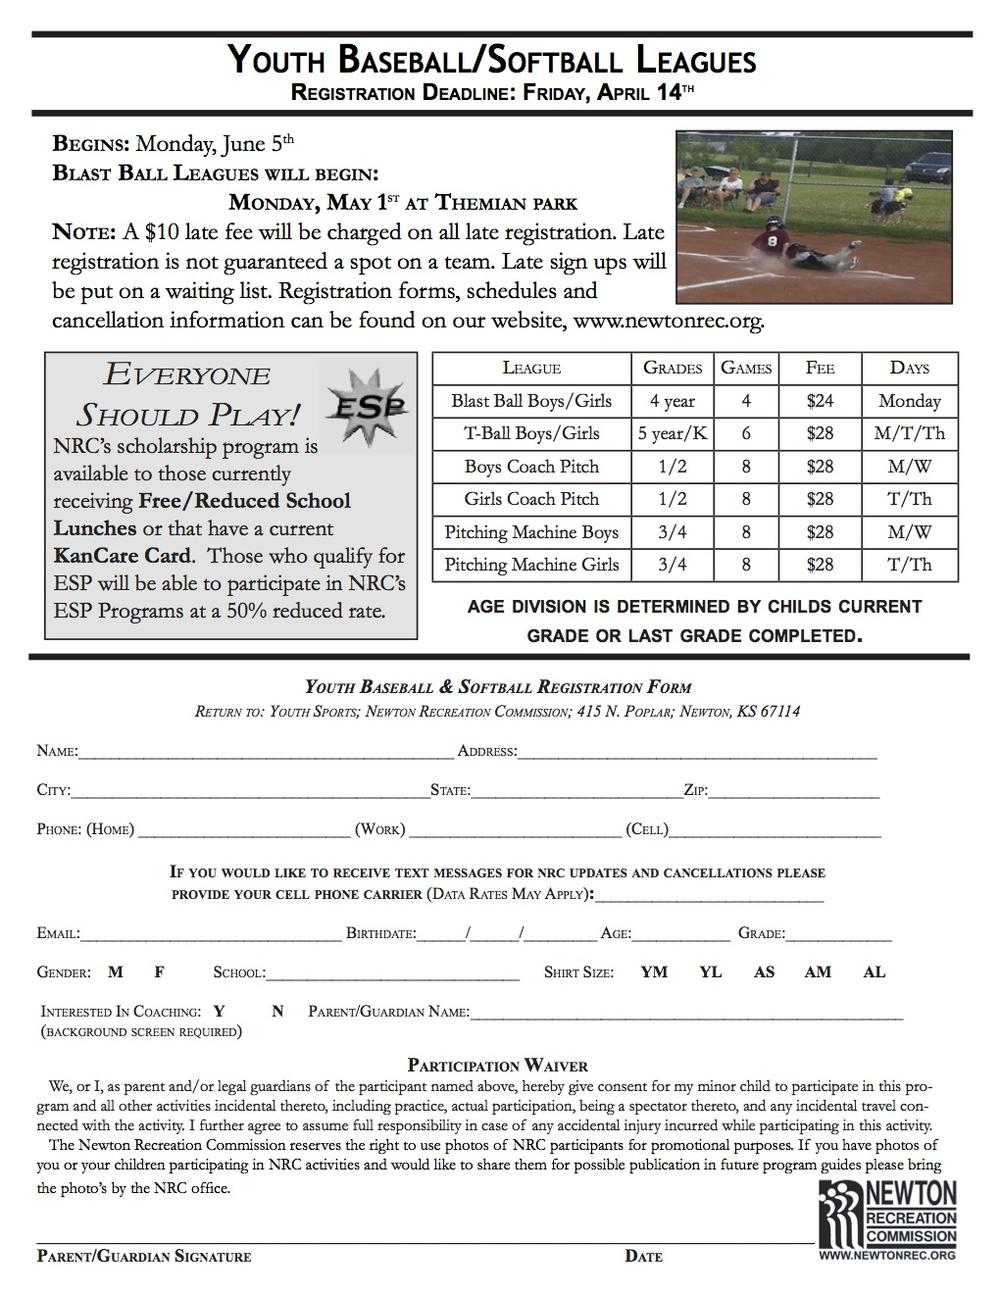 Youth Baseball and Softball Leagues